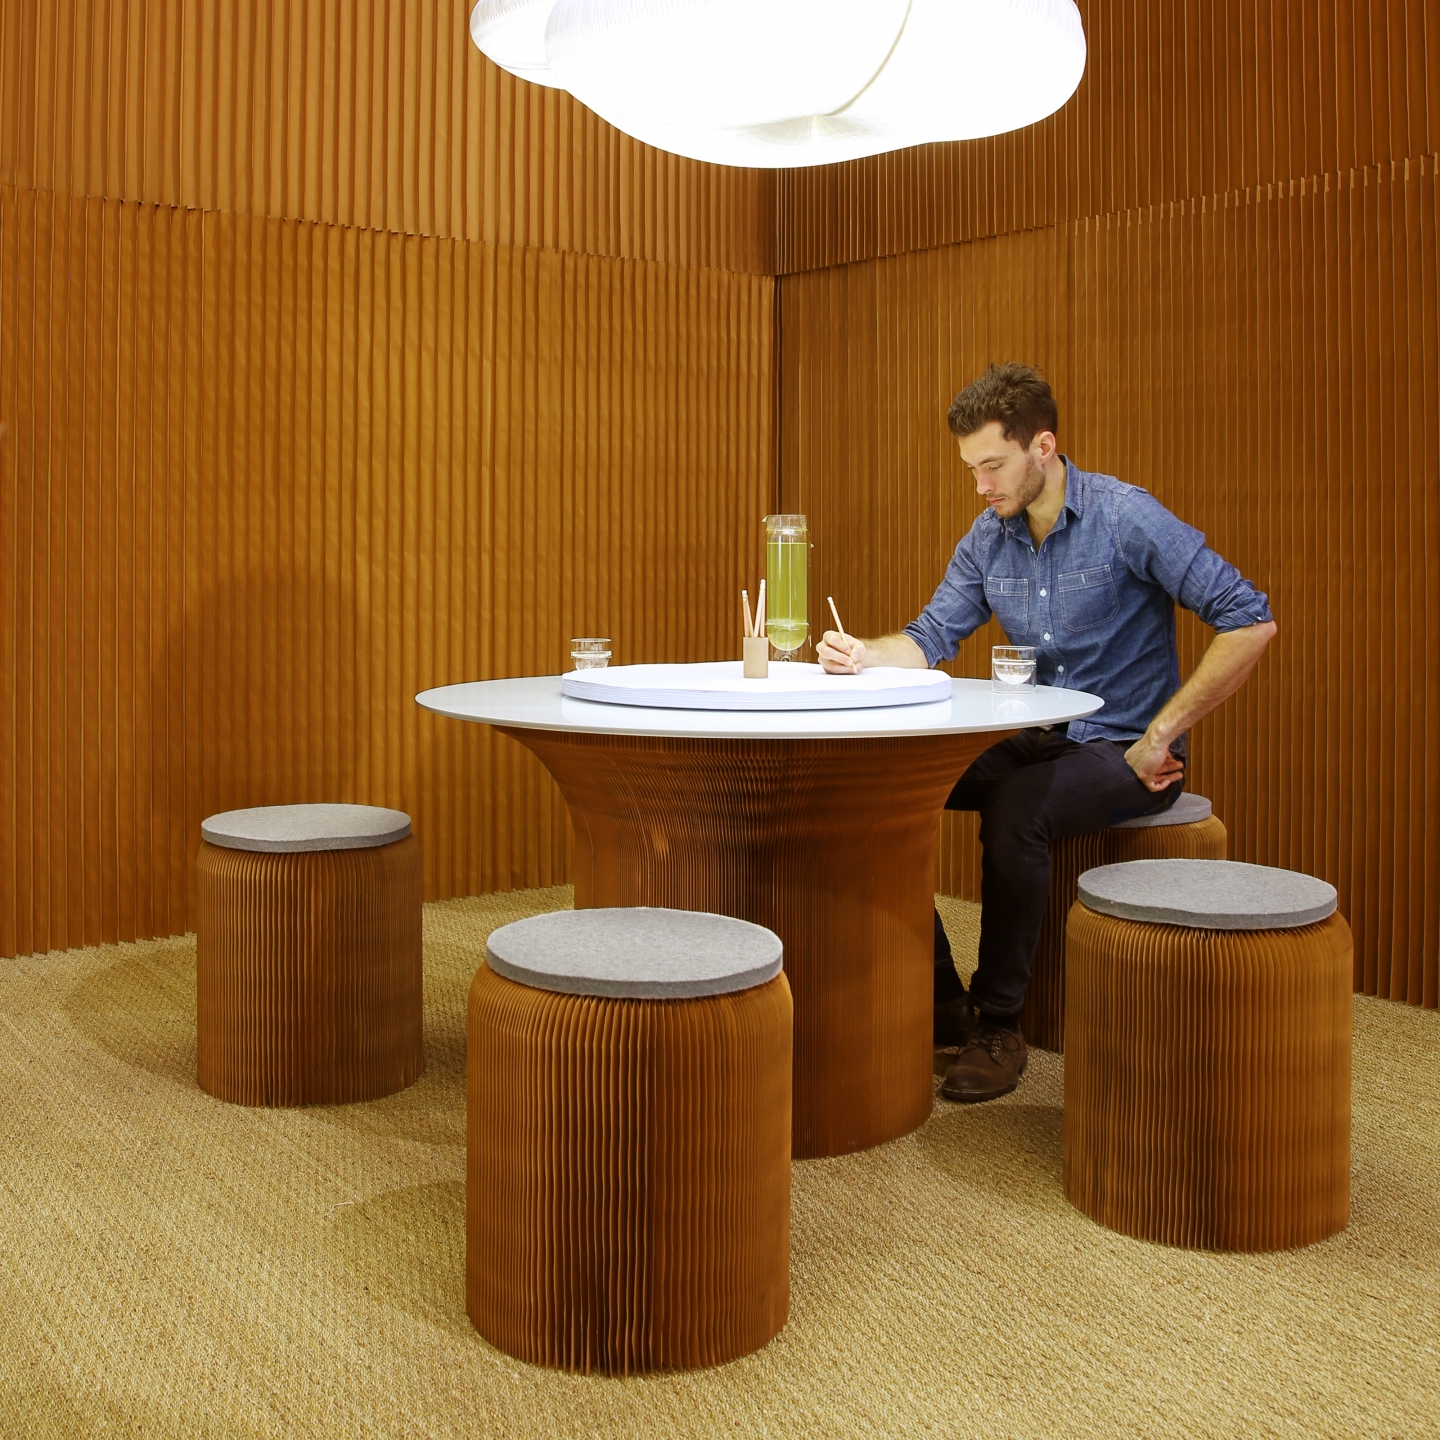 man sits at a cantilever table surrounded by softseating fanning stools